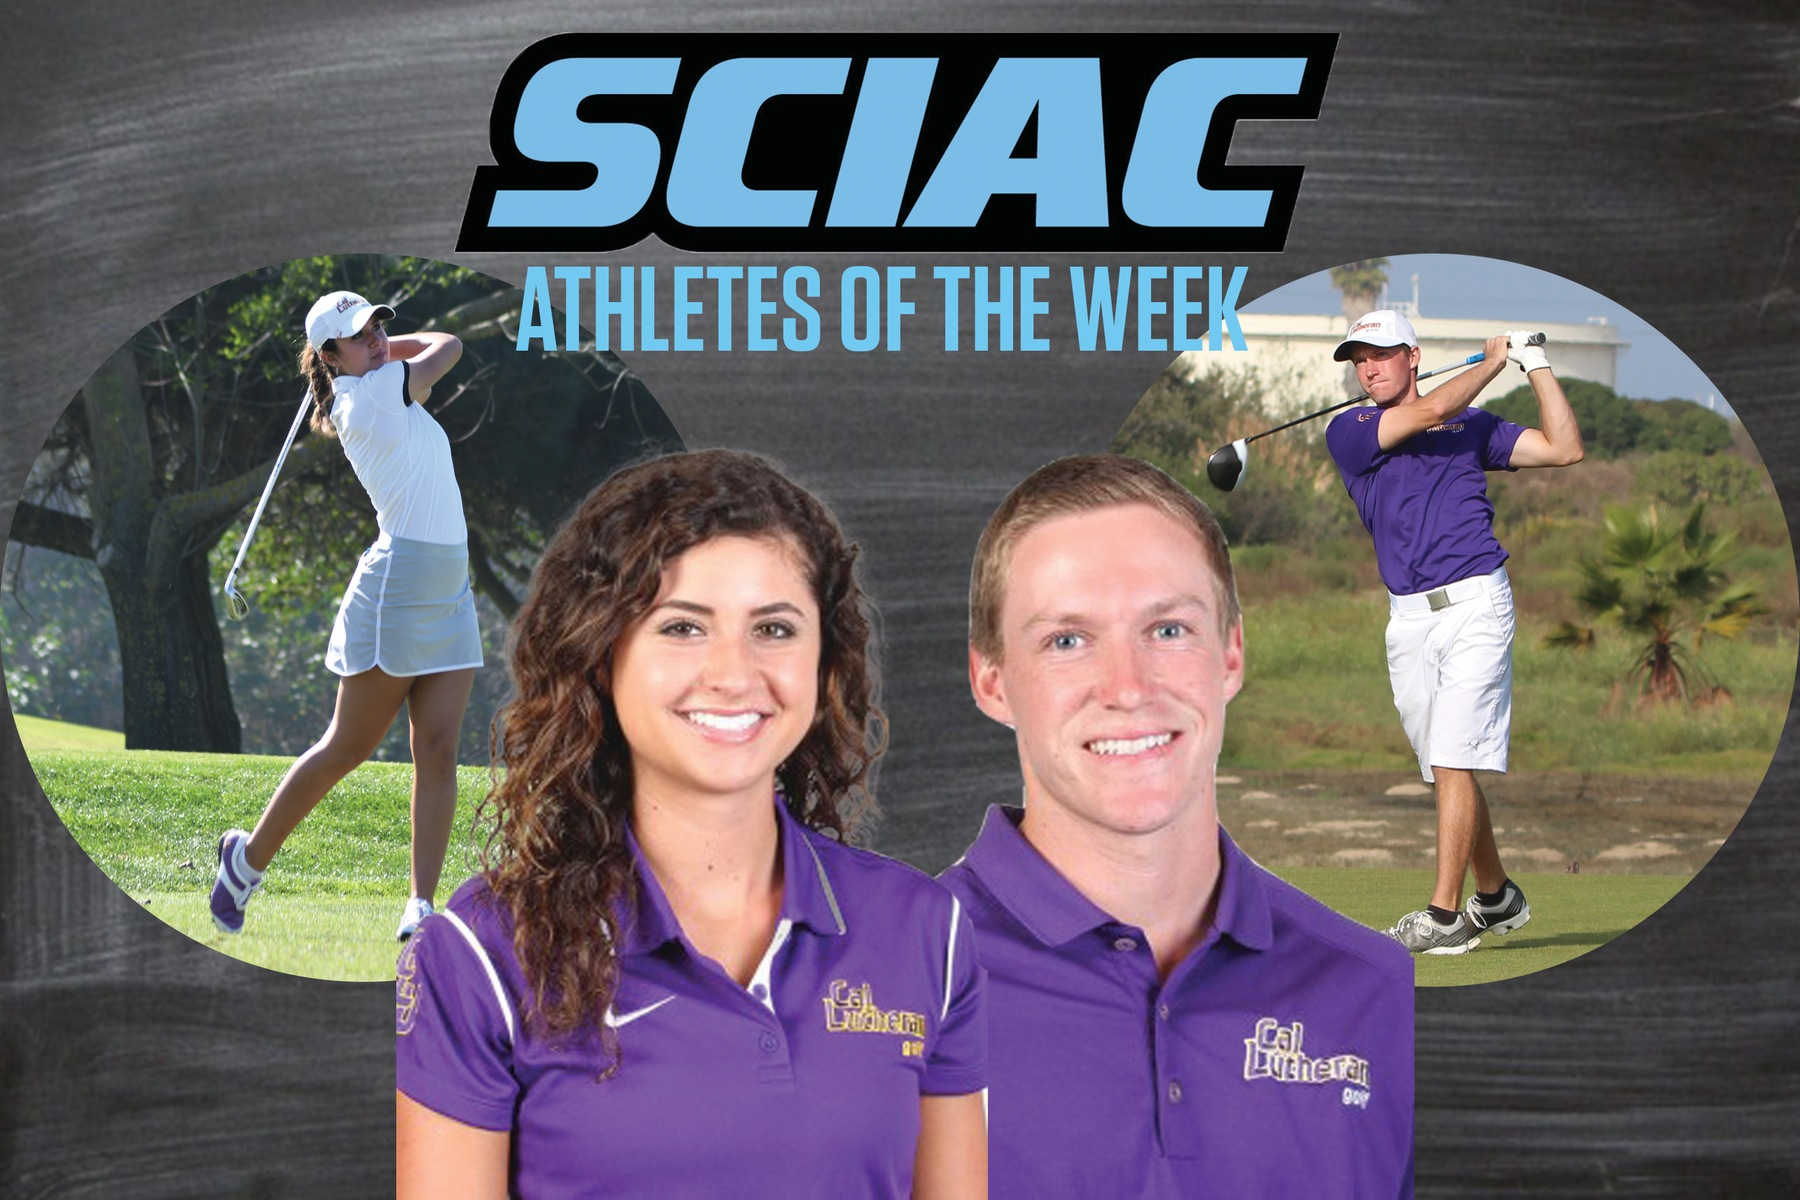 Ferrier and McCardell Earn SCIAC AOW Honors